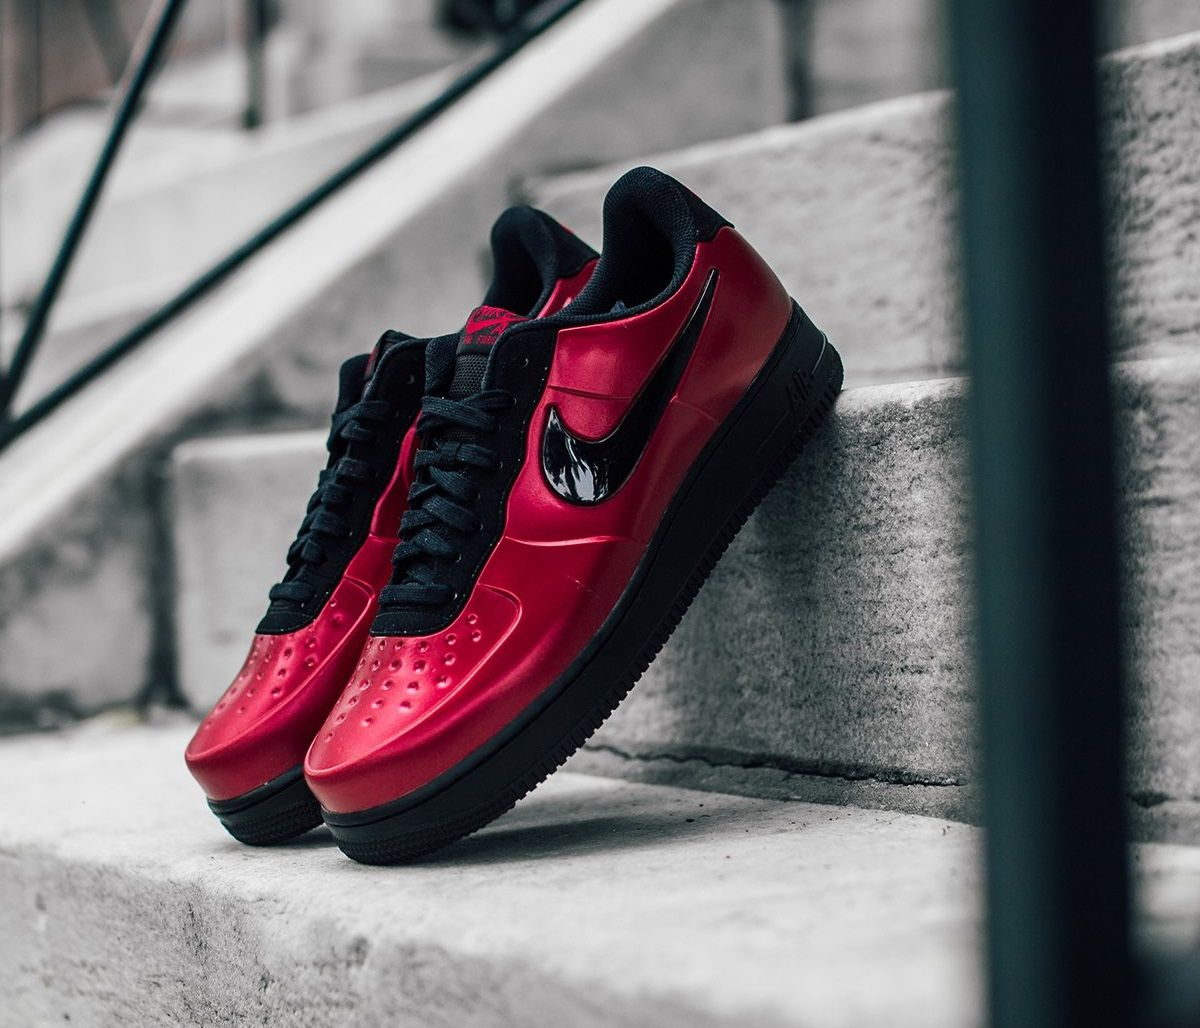 new product 85aeb 5ca6c NIKE AIR FORCE 1 FOAMPOSITE PRO CUPSOLE GYM RED BLACK MEN